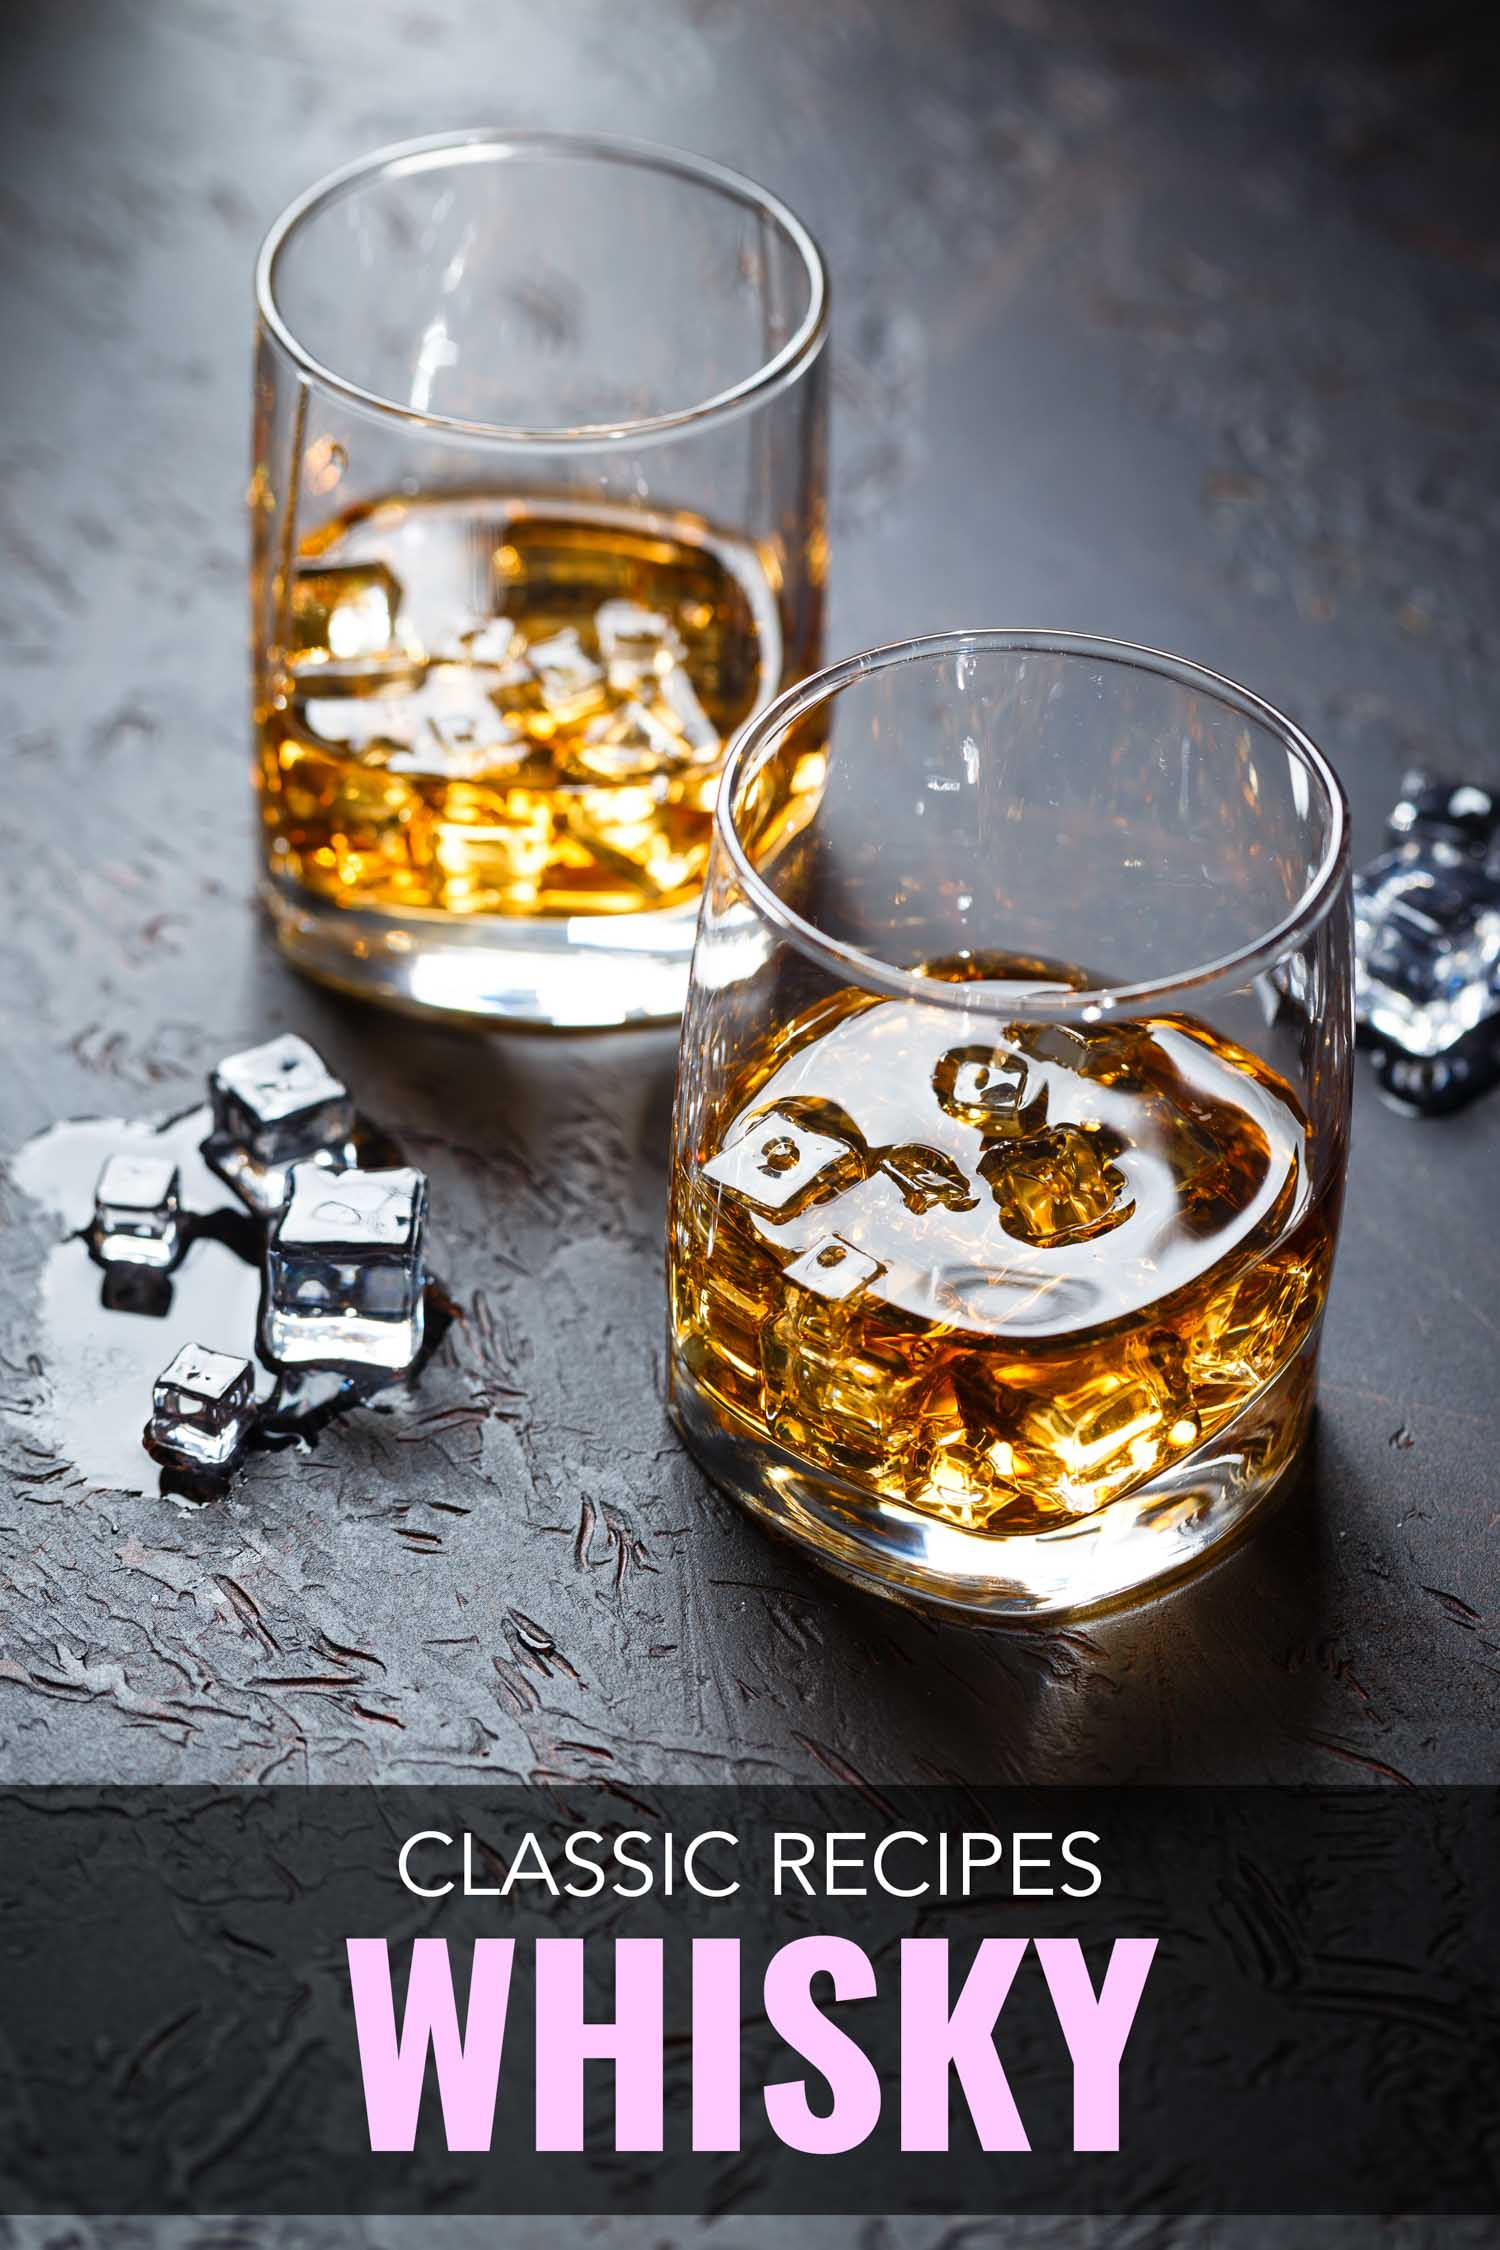 Classic whisky cocktails in low glasses